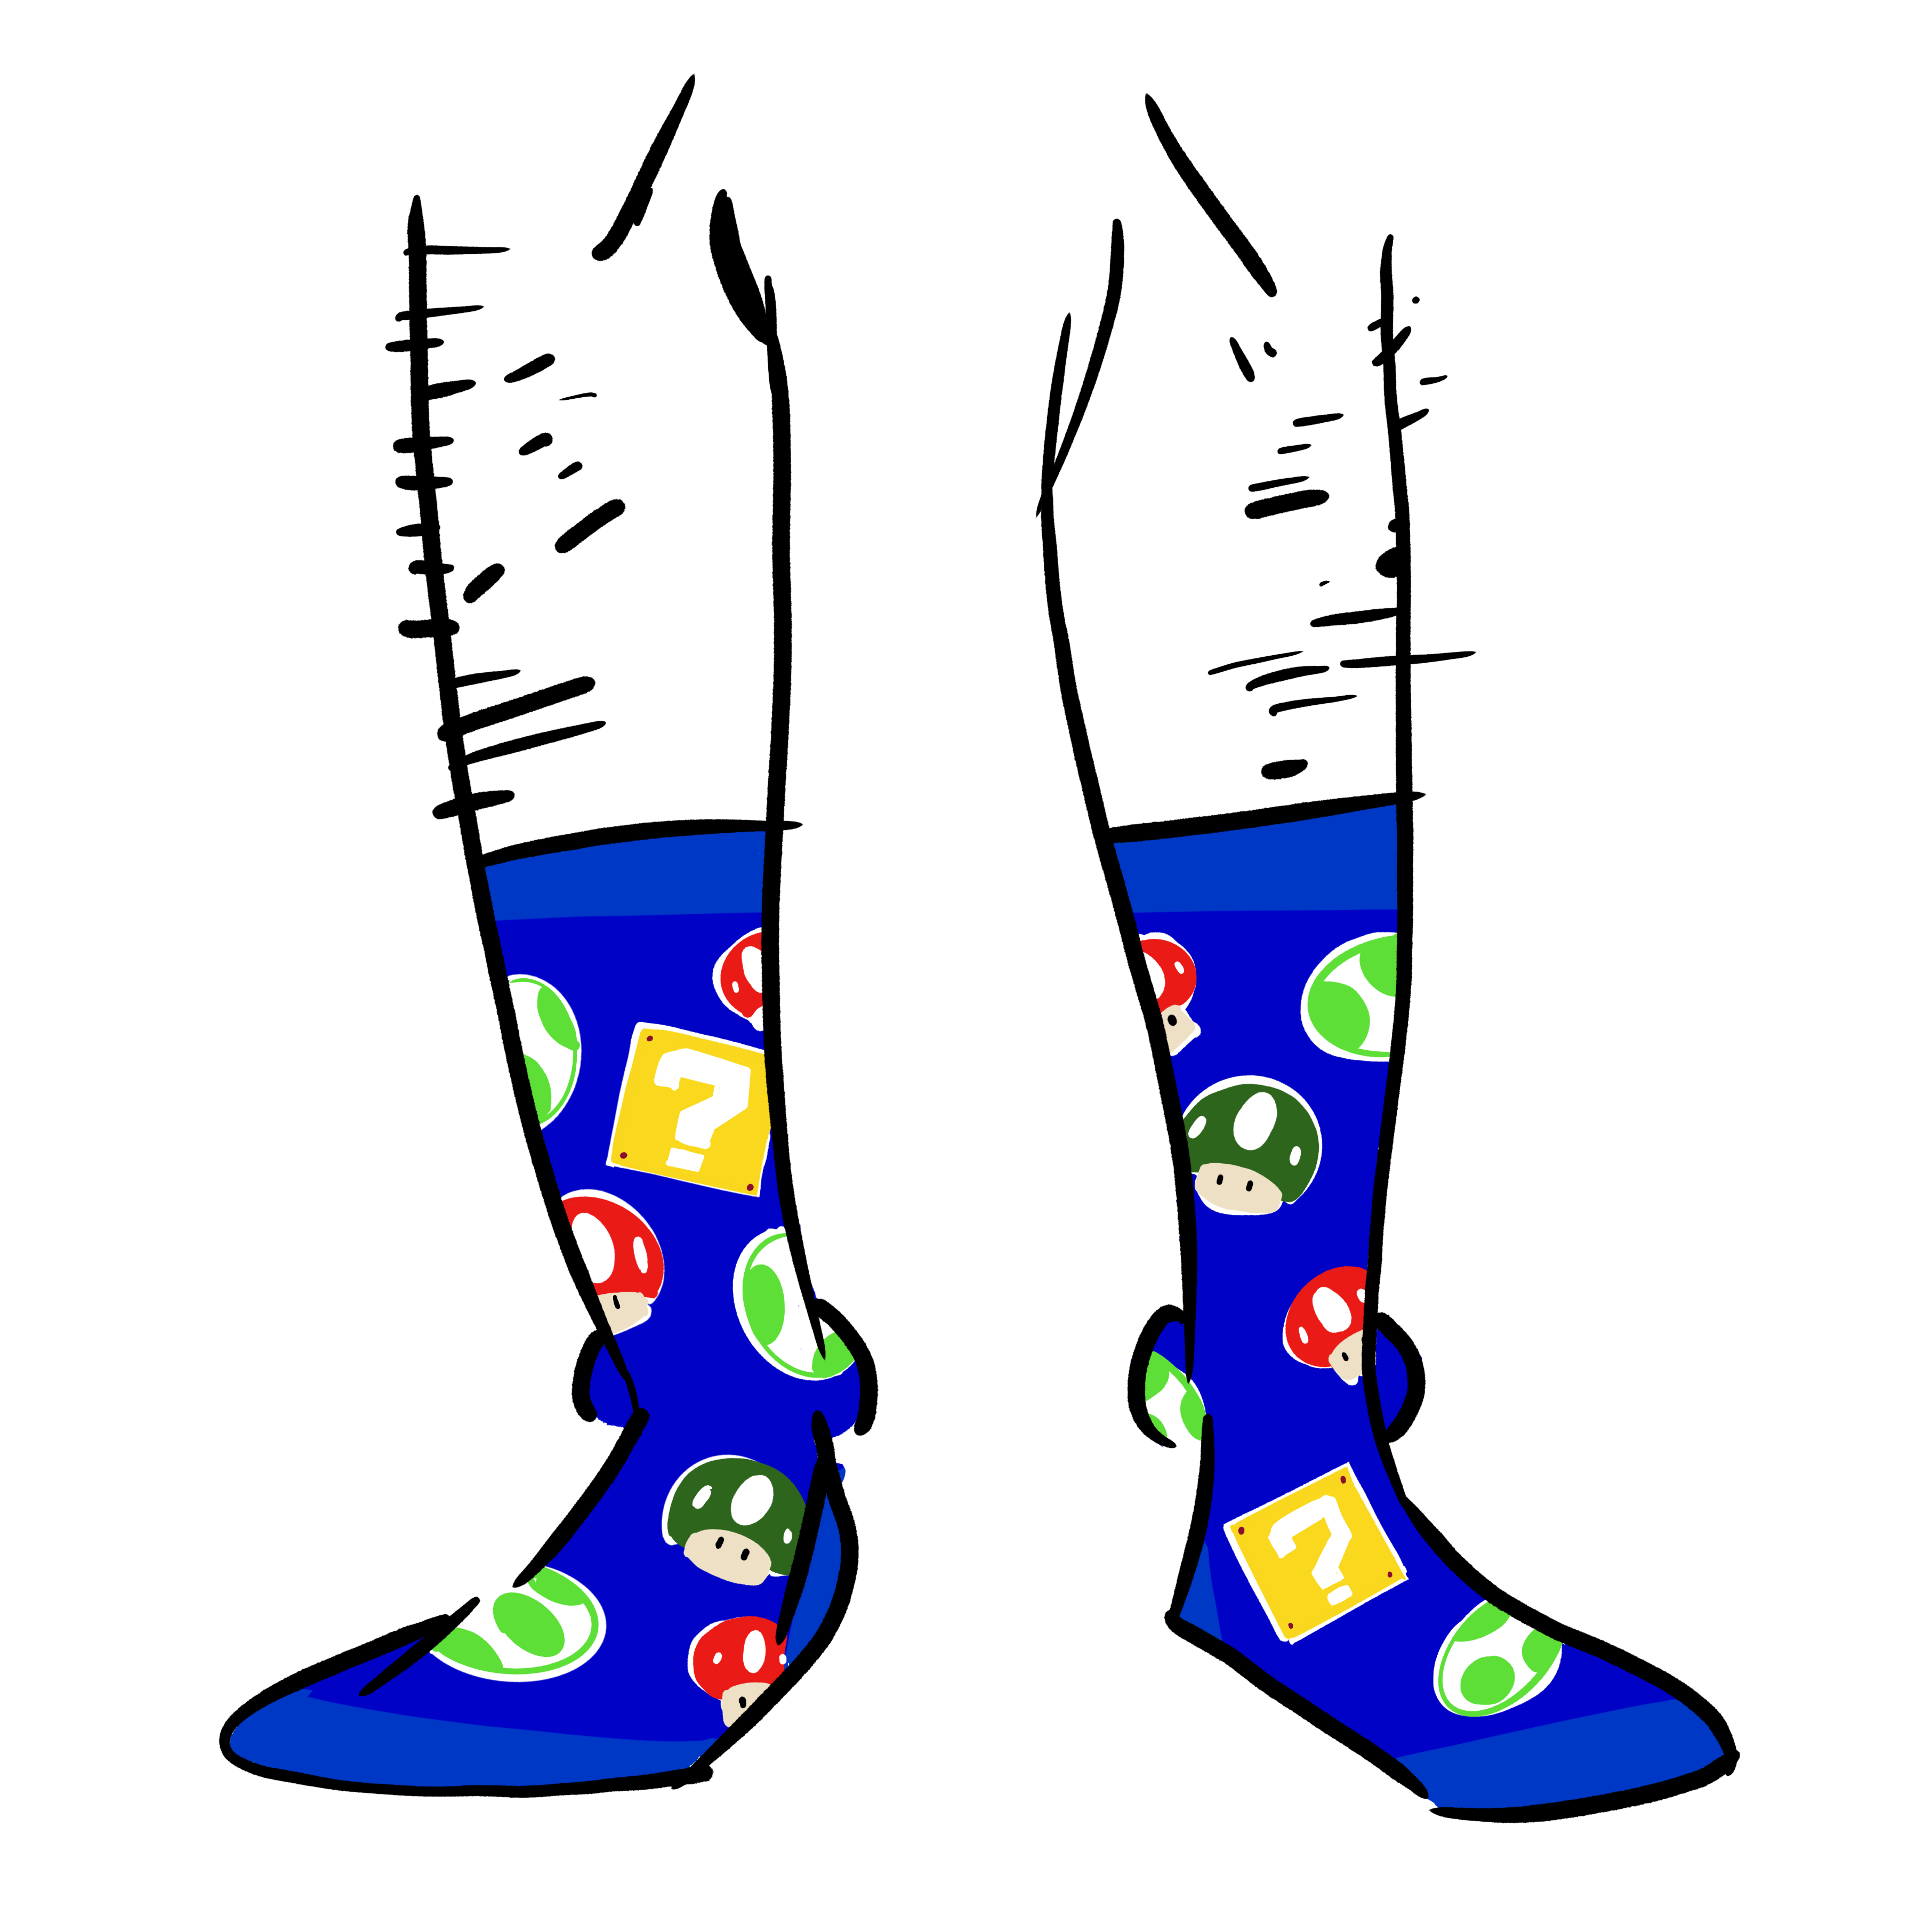 Blue socks with Super Mario Bros elements on them. A Question Mark box, a 1up mushroom, a growing mushroom, and a koopa.